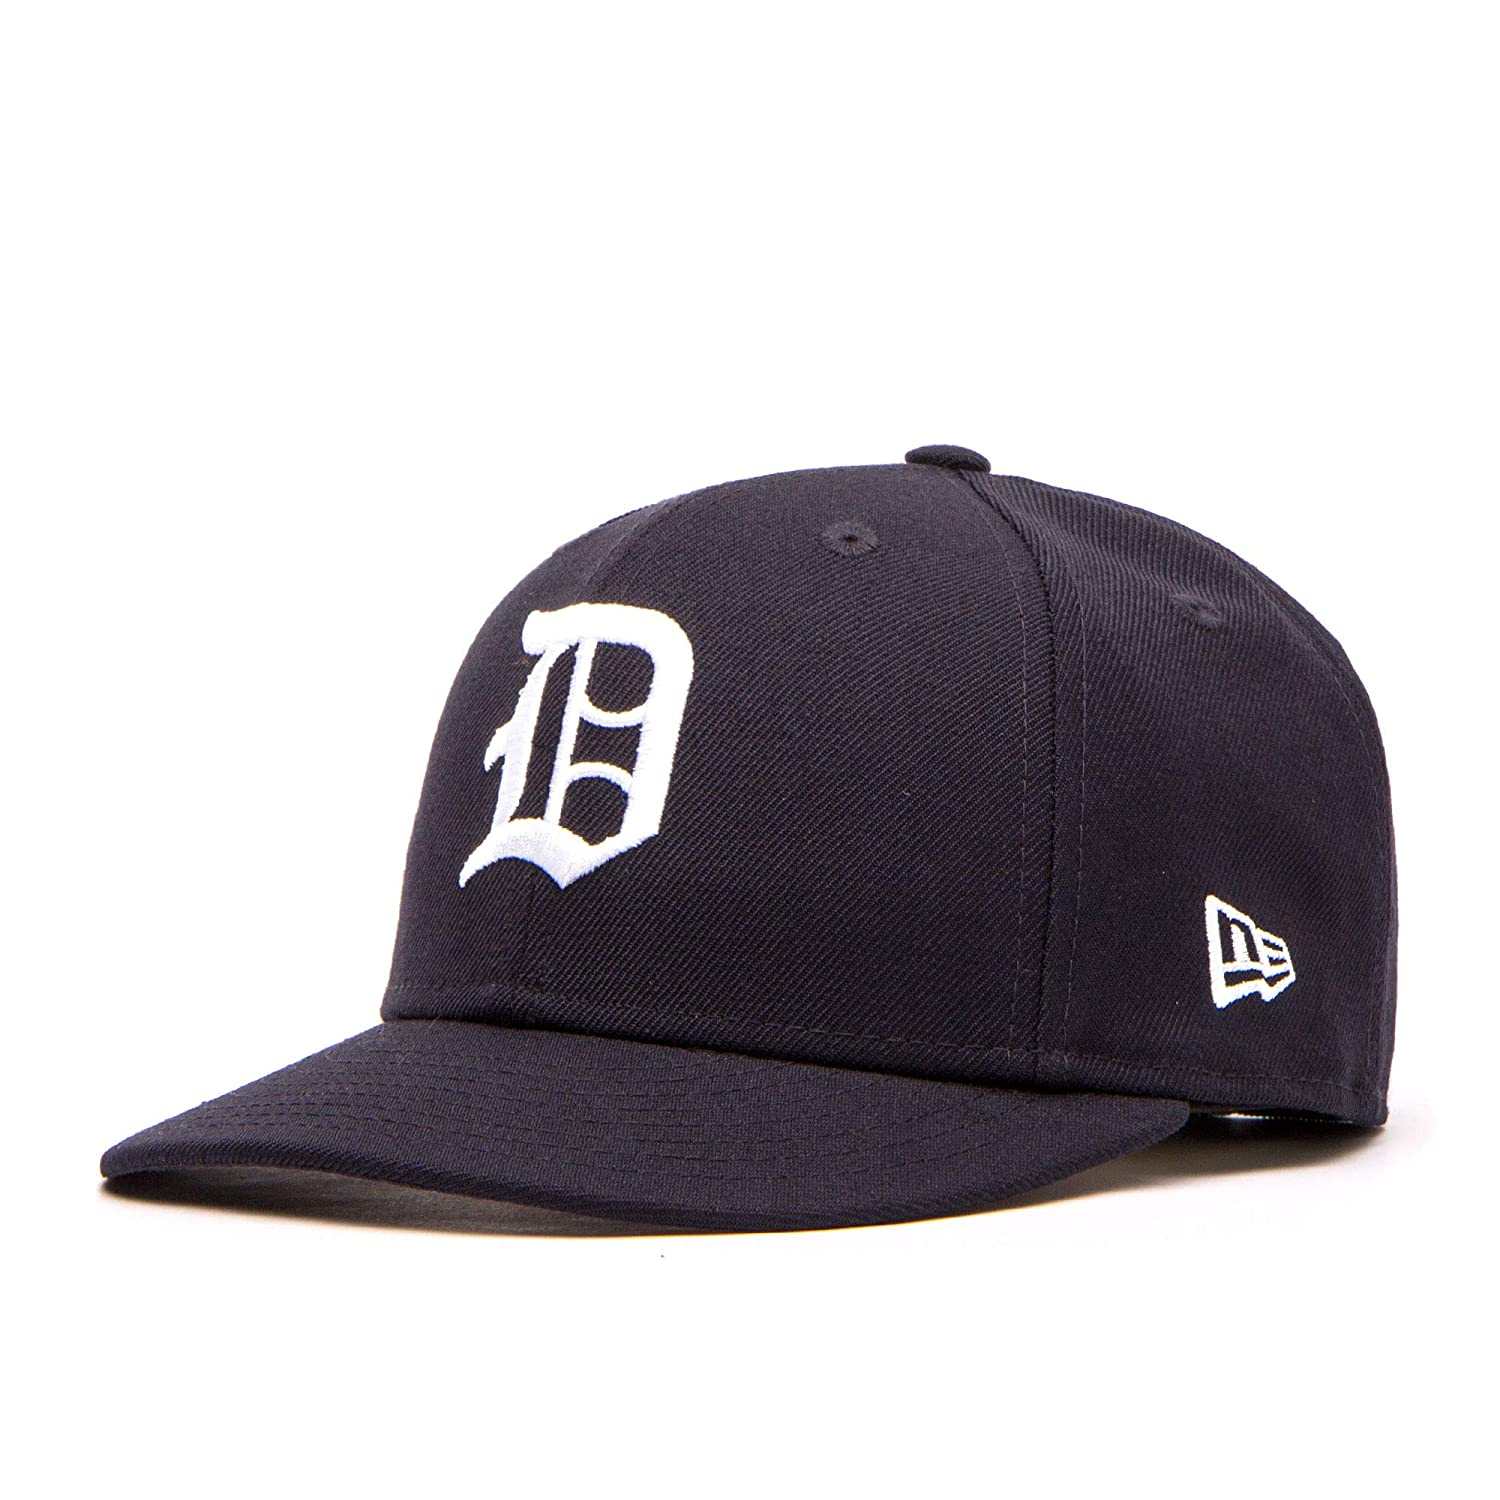 5c726c50e2d New Era Detroit Tigers Team Cooperstown Low Profile 59FIFTY